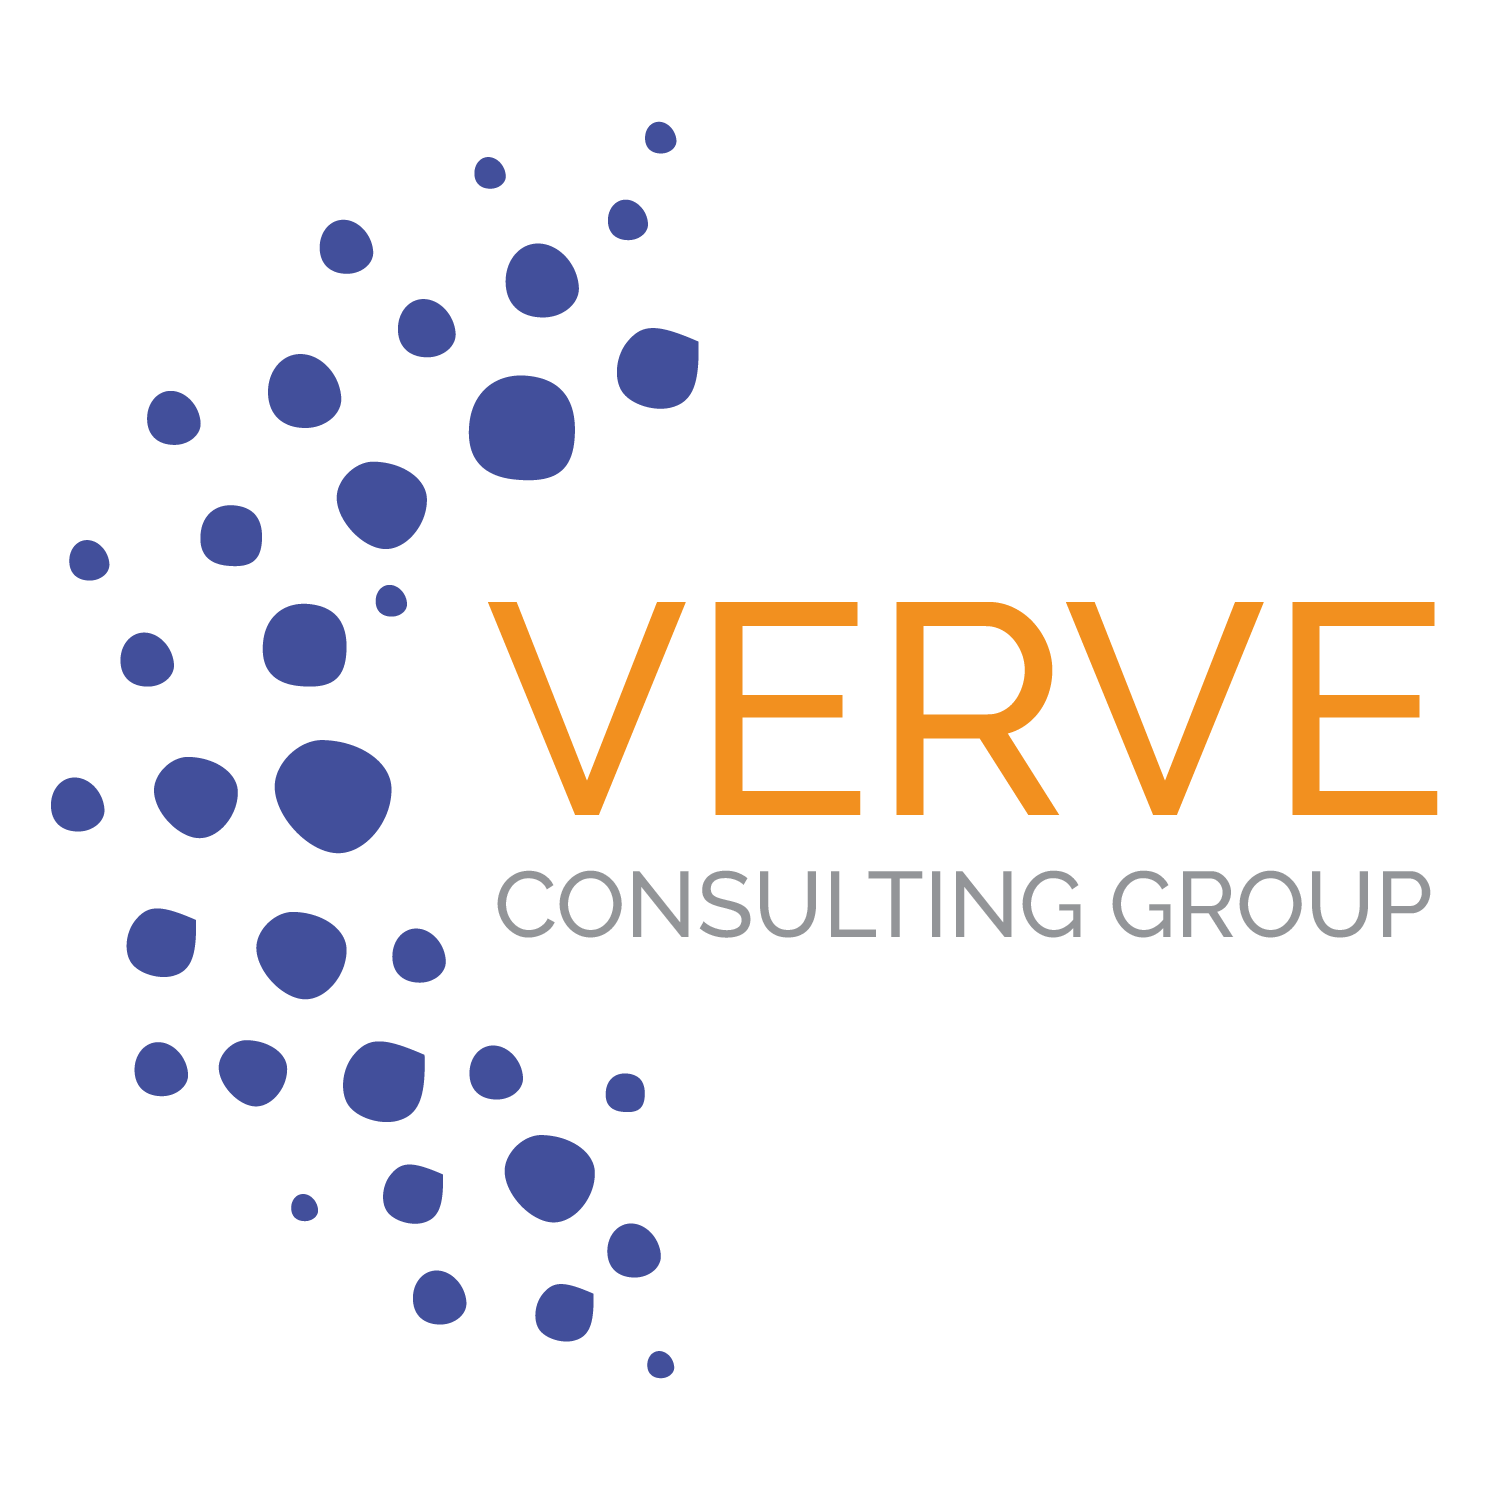 Verve Consulting Group